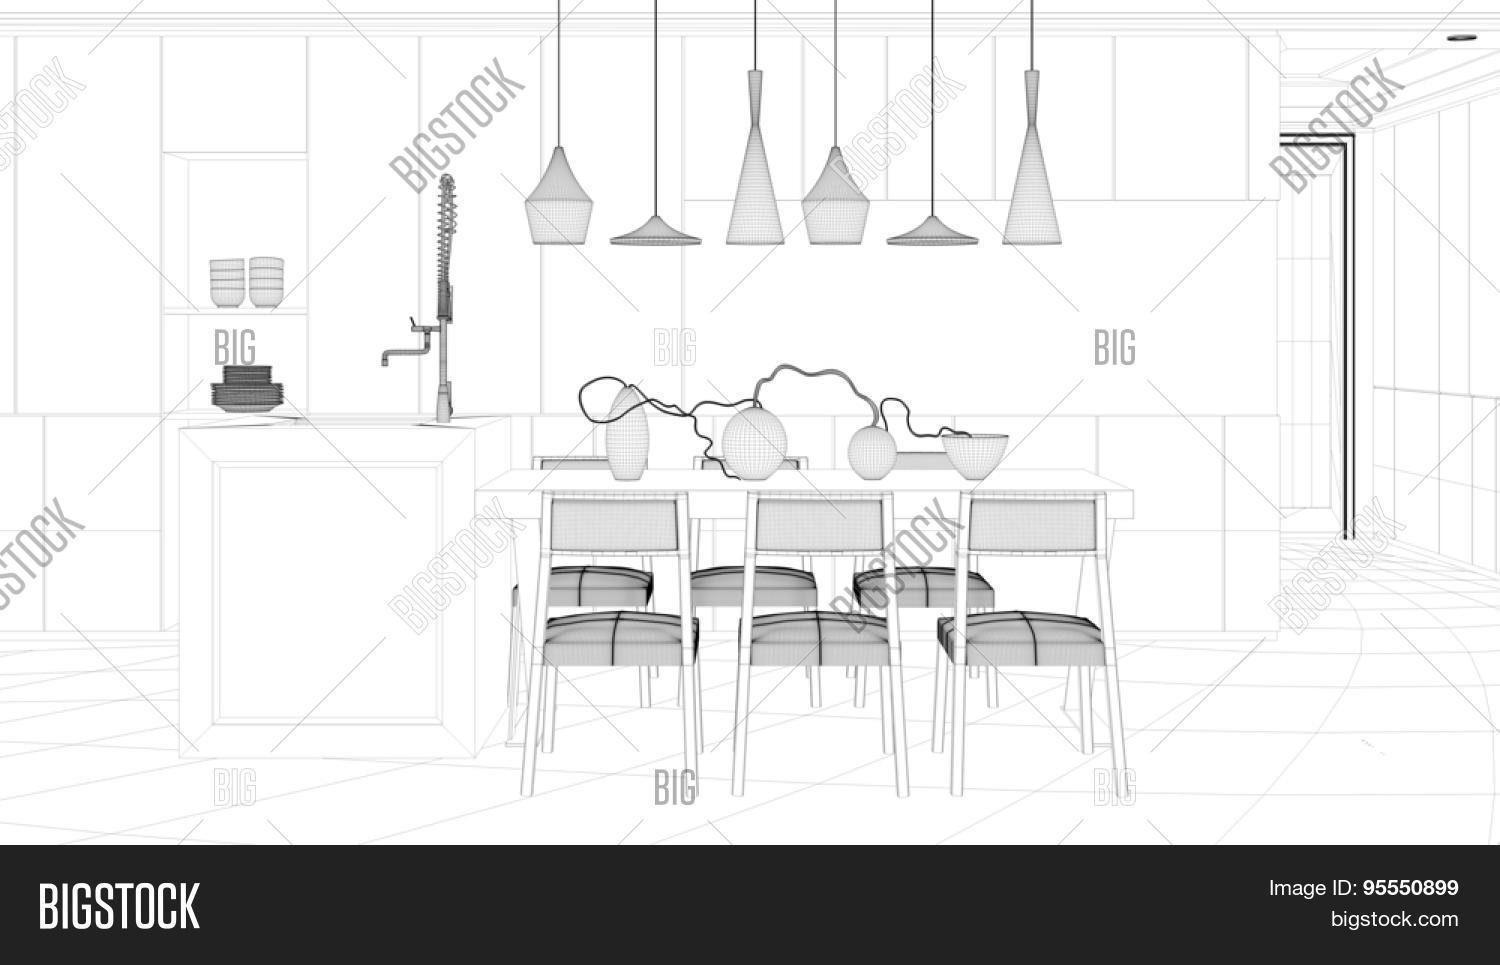 The Modern  Bar Room and Dining Room  opentablecom